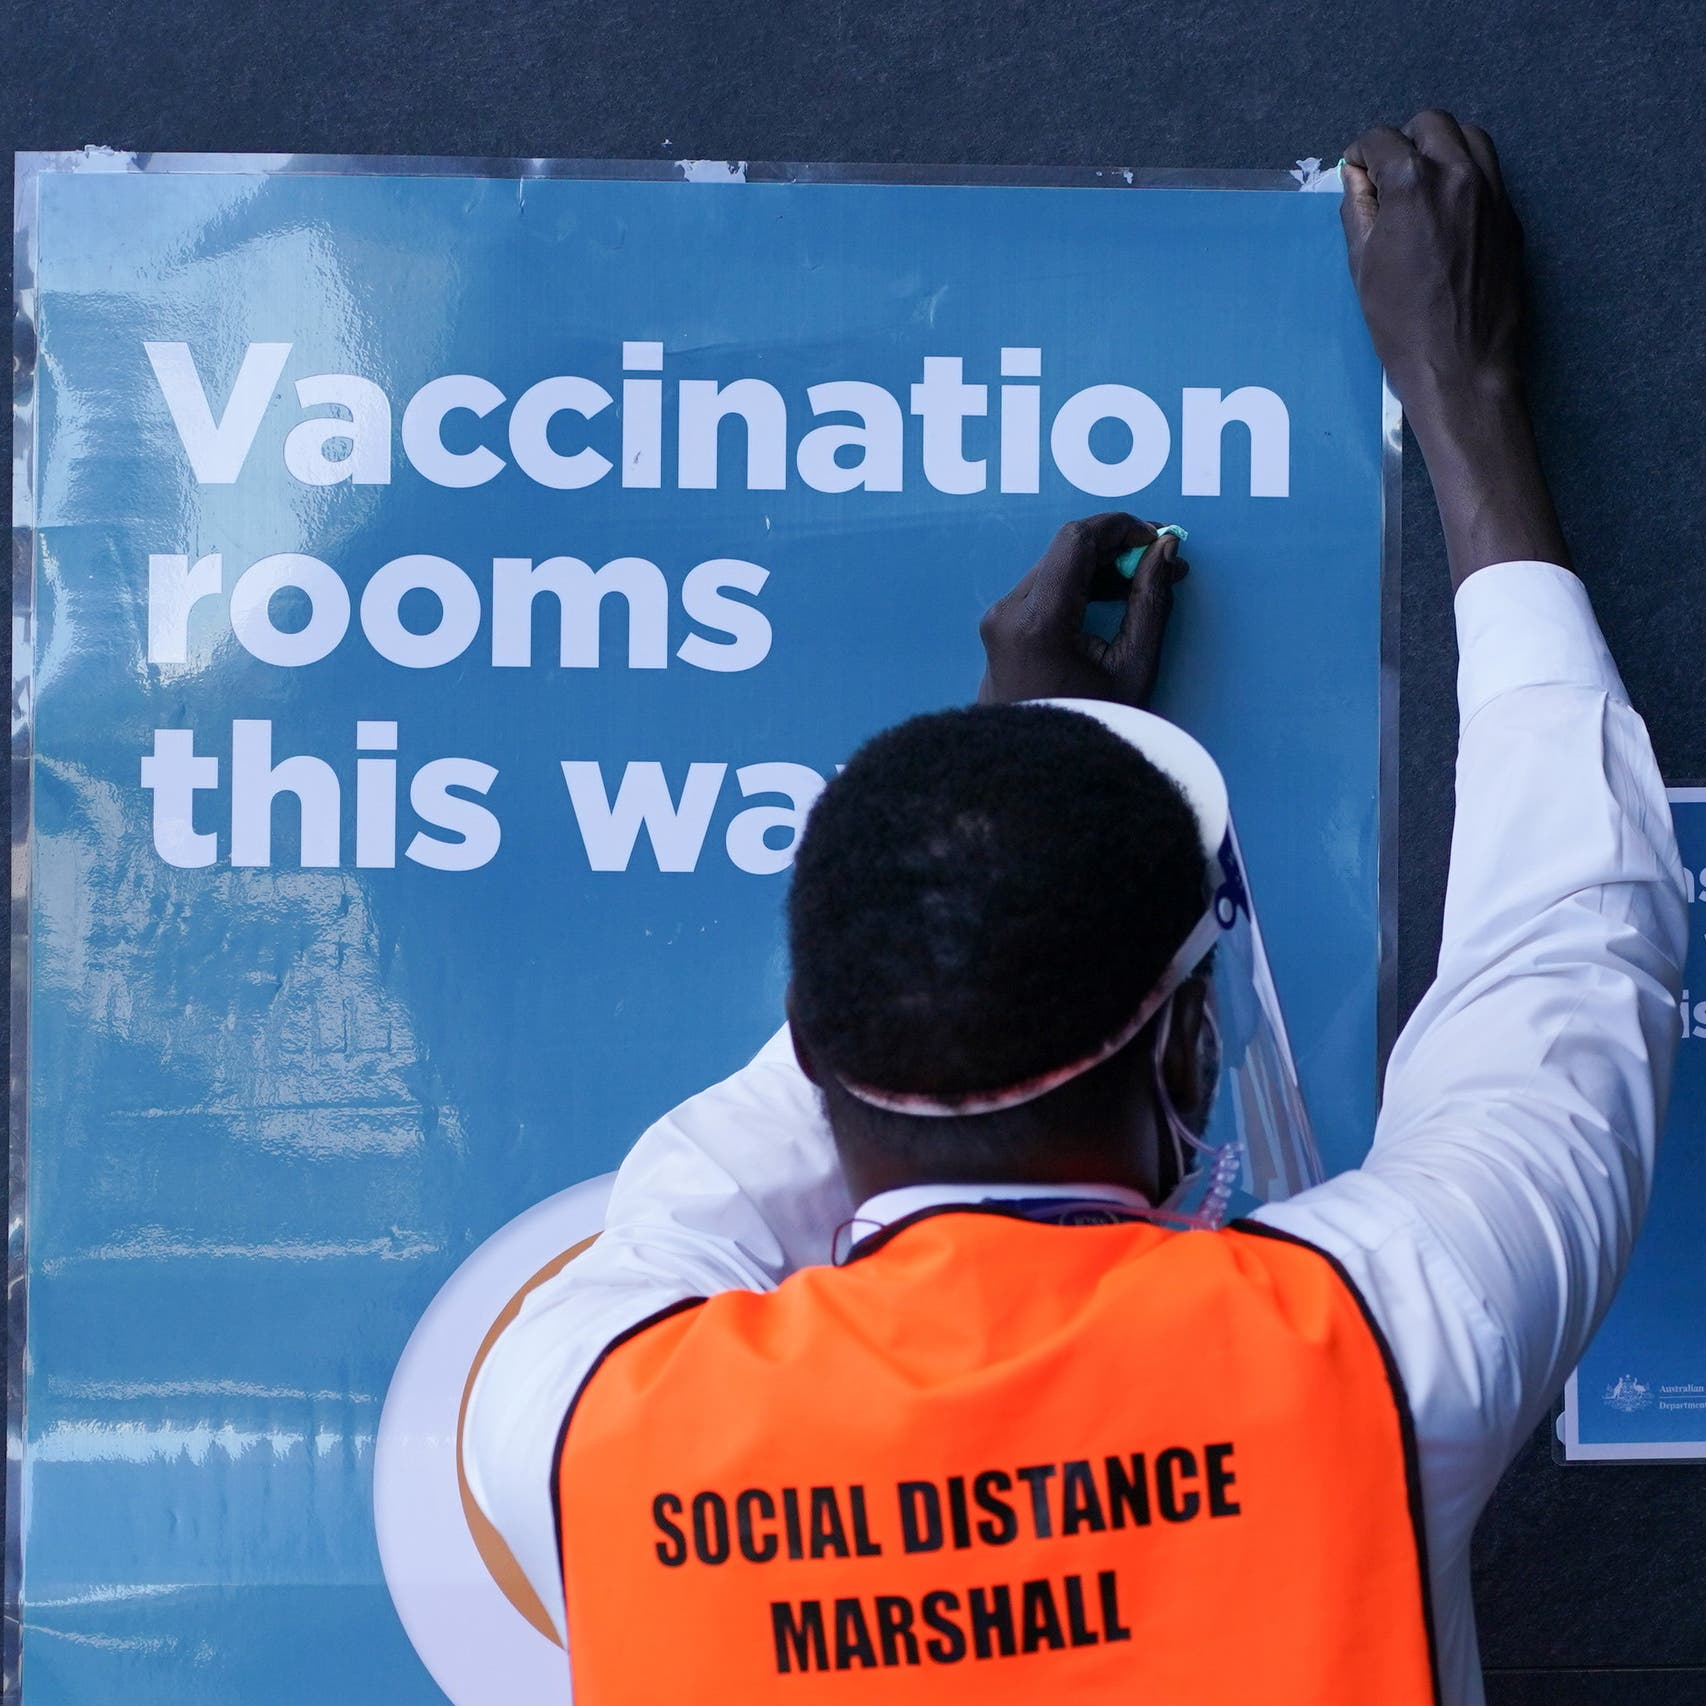 Sydney COVID-19 cases may hit peak as Australia steps up vaccine rollout